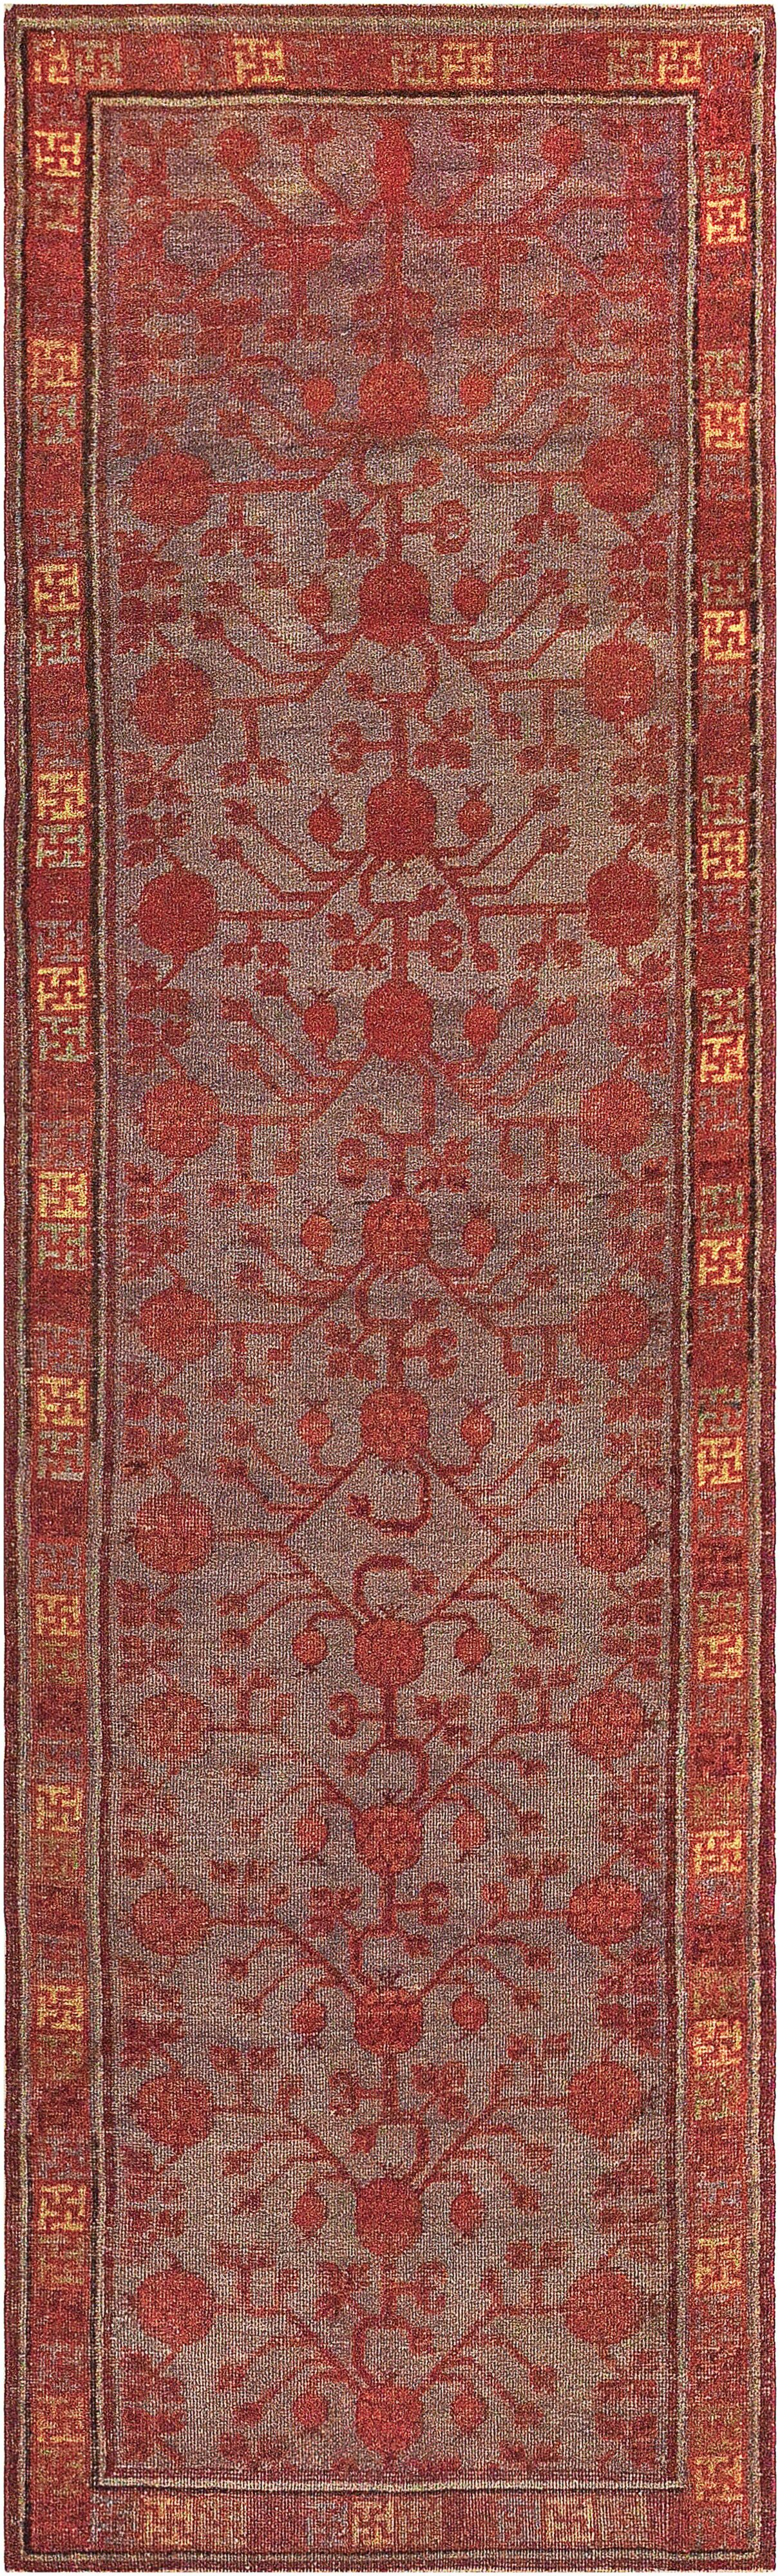 One-of-a-Kind Antique Khotan Handwoven Wool Gray/Red Indoor Area Rug